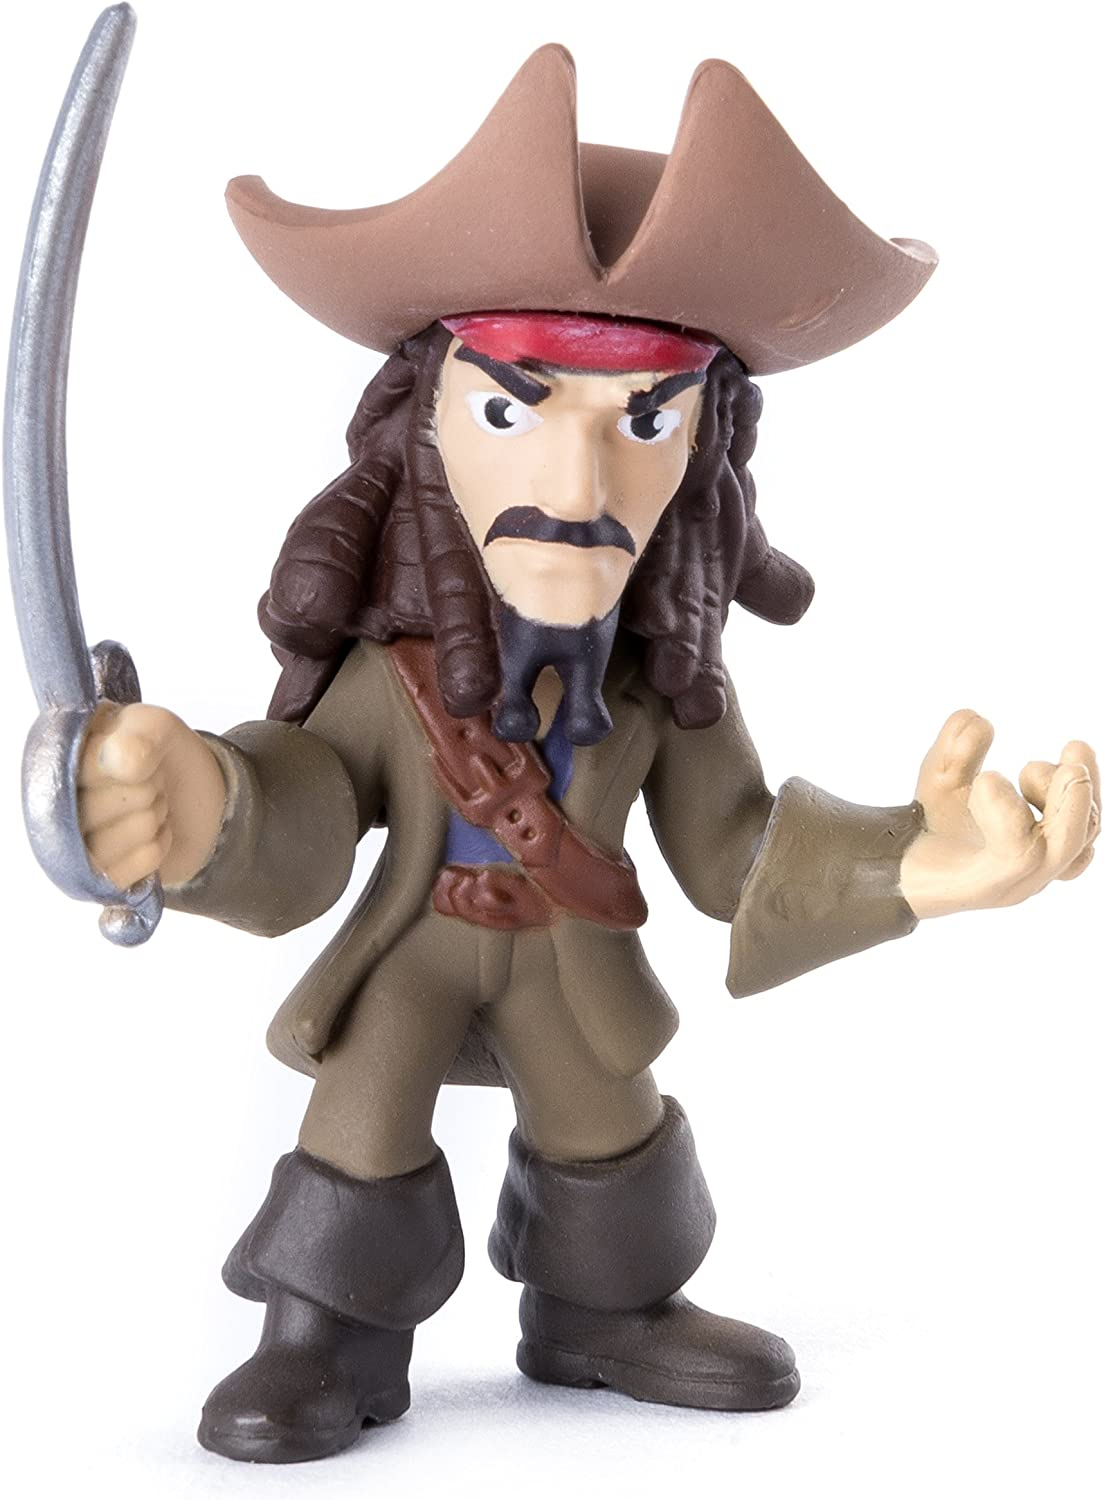 Pirates of the Caribbean: Dead Men Tell No Tales - Pirate Battle Figure - Jack Sparrow